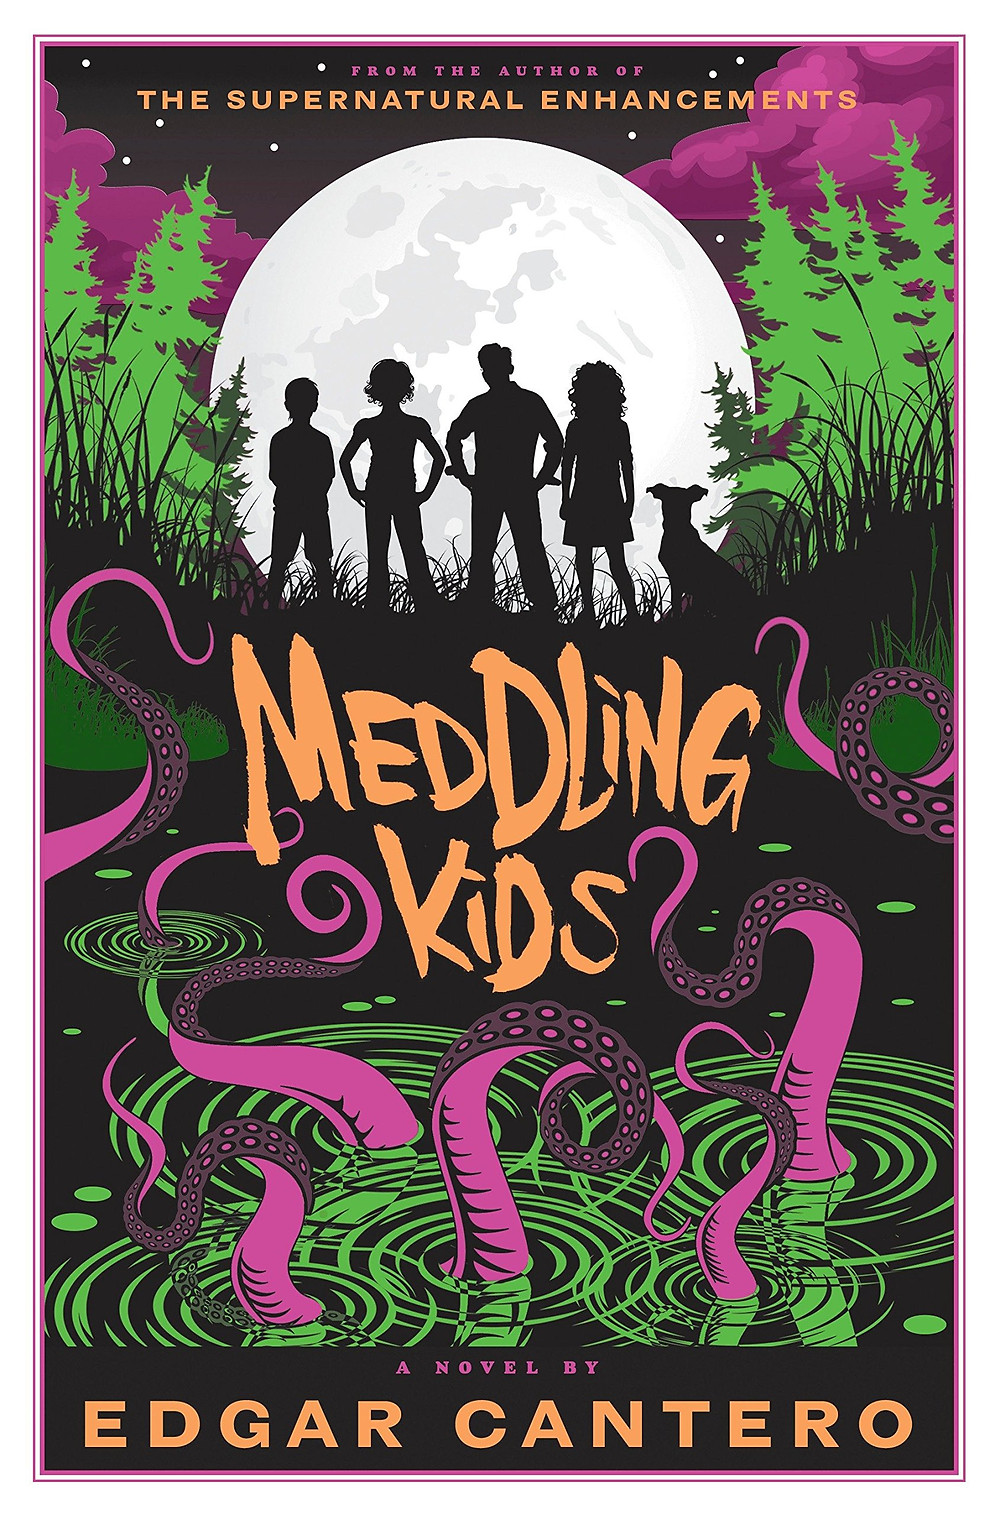 Book cover of Meddling Kids by Edgar Cantero.